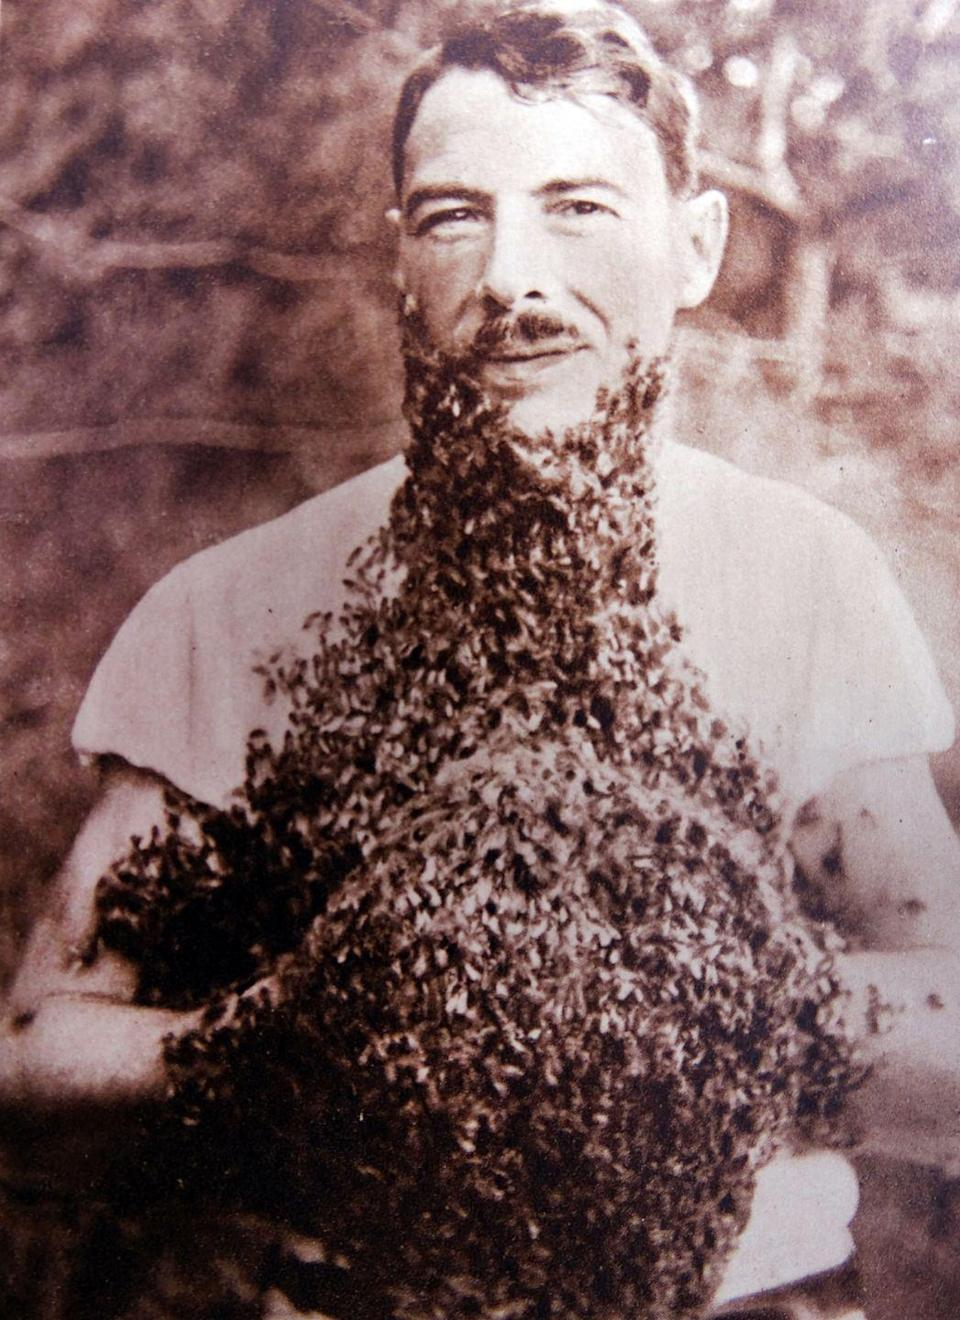 <p>We have no idea why this man would dare have so many bees around his face and in his hands, but we're certain he must have walked away with at least one or two stings. At least he was able to stand still long enough to snap this photo back in 1930, or we might not have believed it.</p>